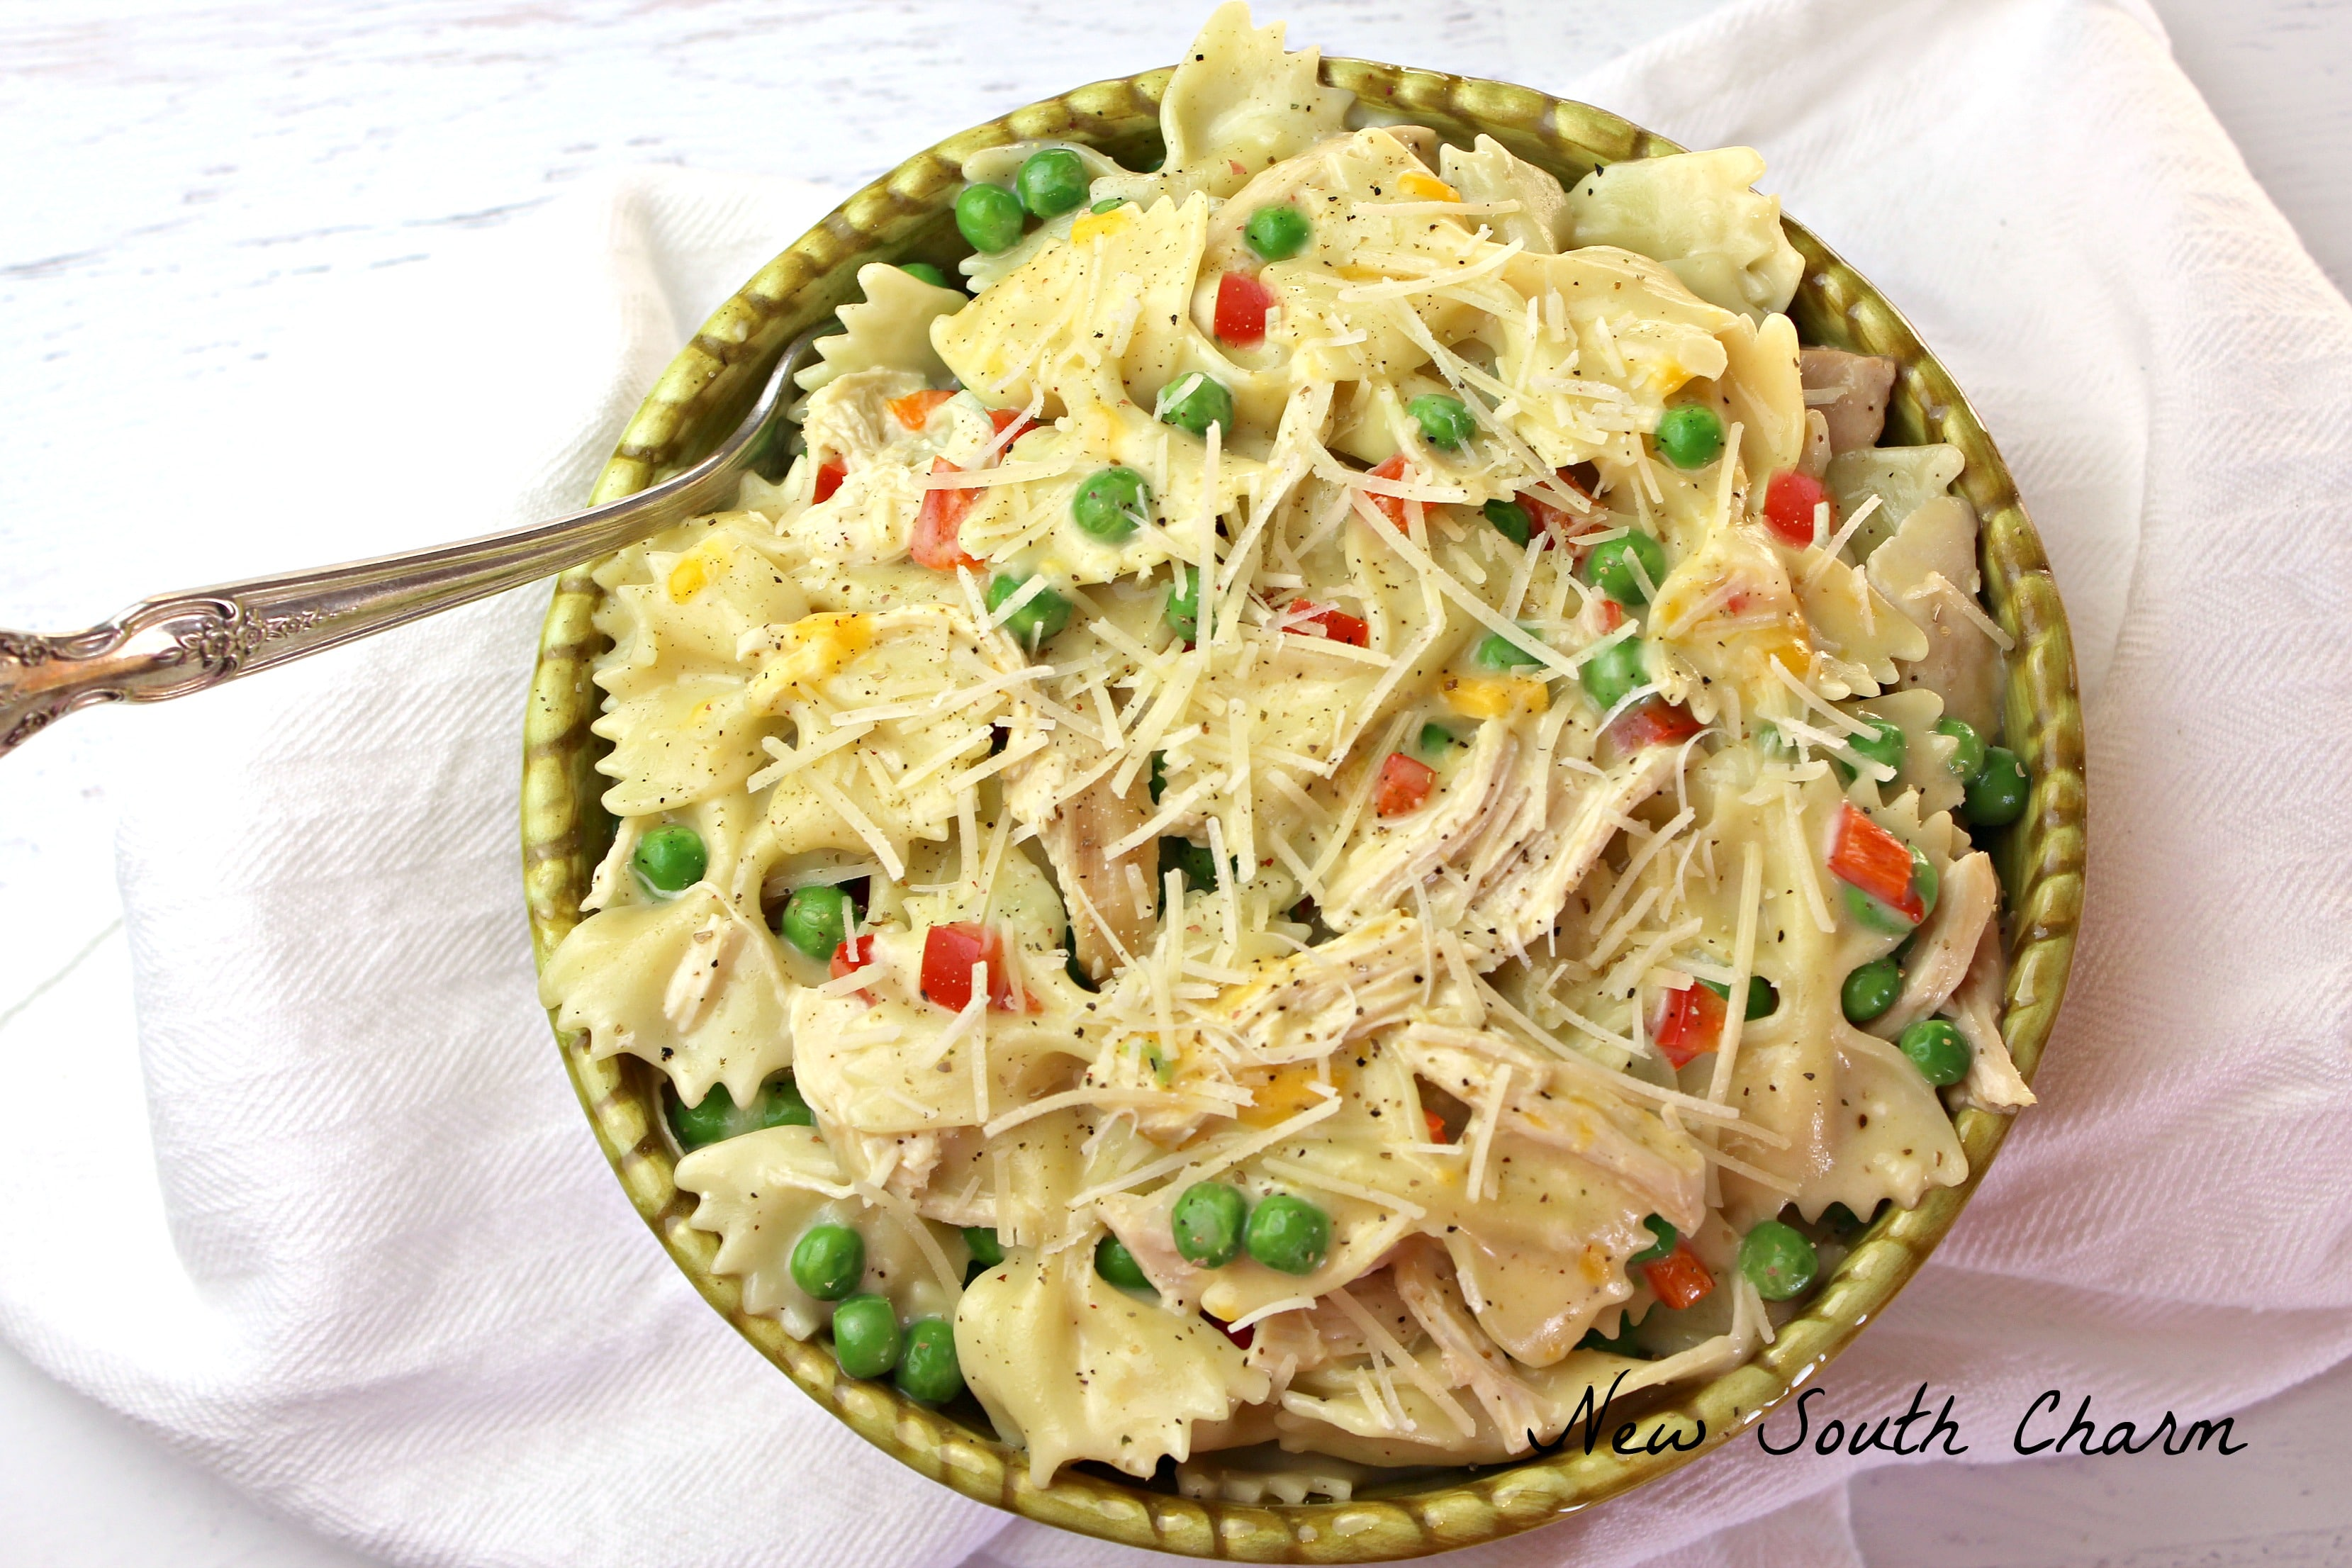 Creamy Chicken Garlic Pasta